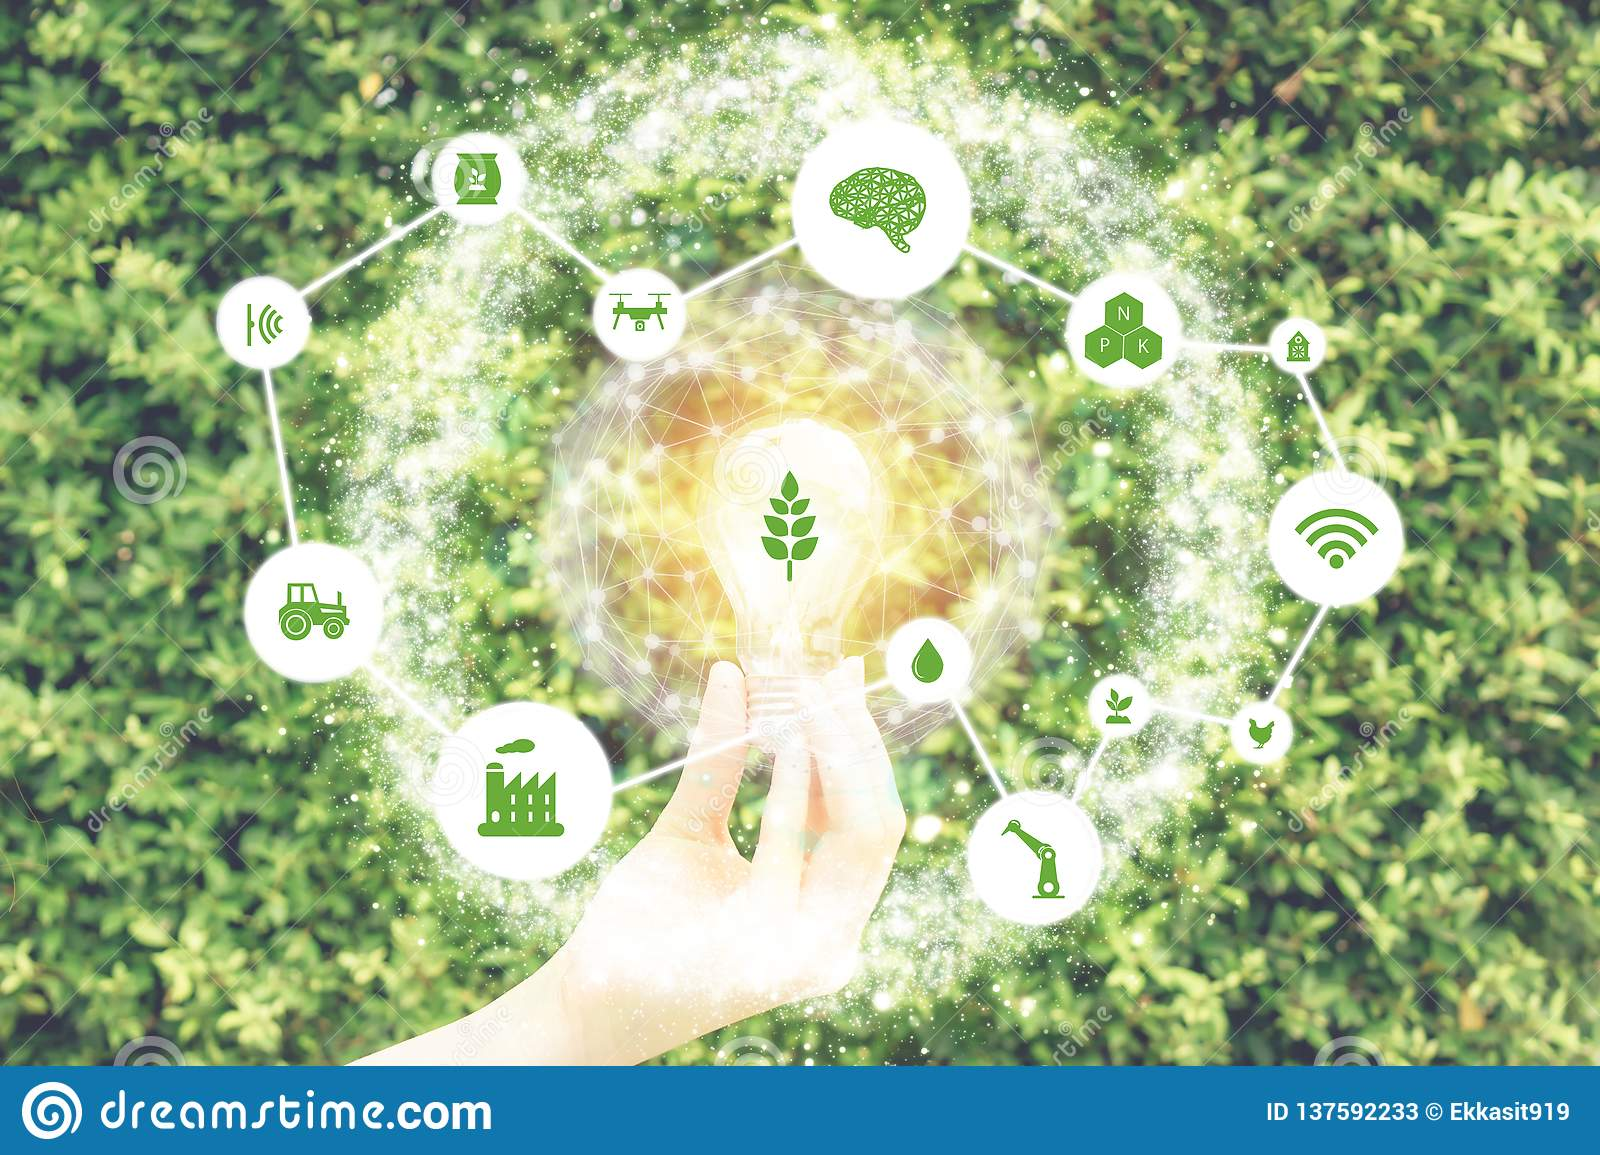 Iot, internet of things,farmer agriculture concept, Smart farm with Robotic icon artificial intelligence/ ai use for management